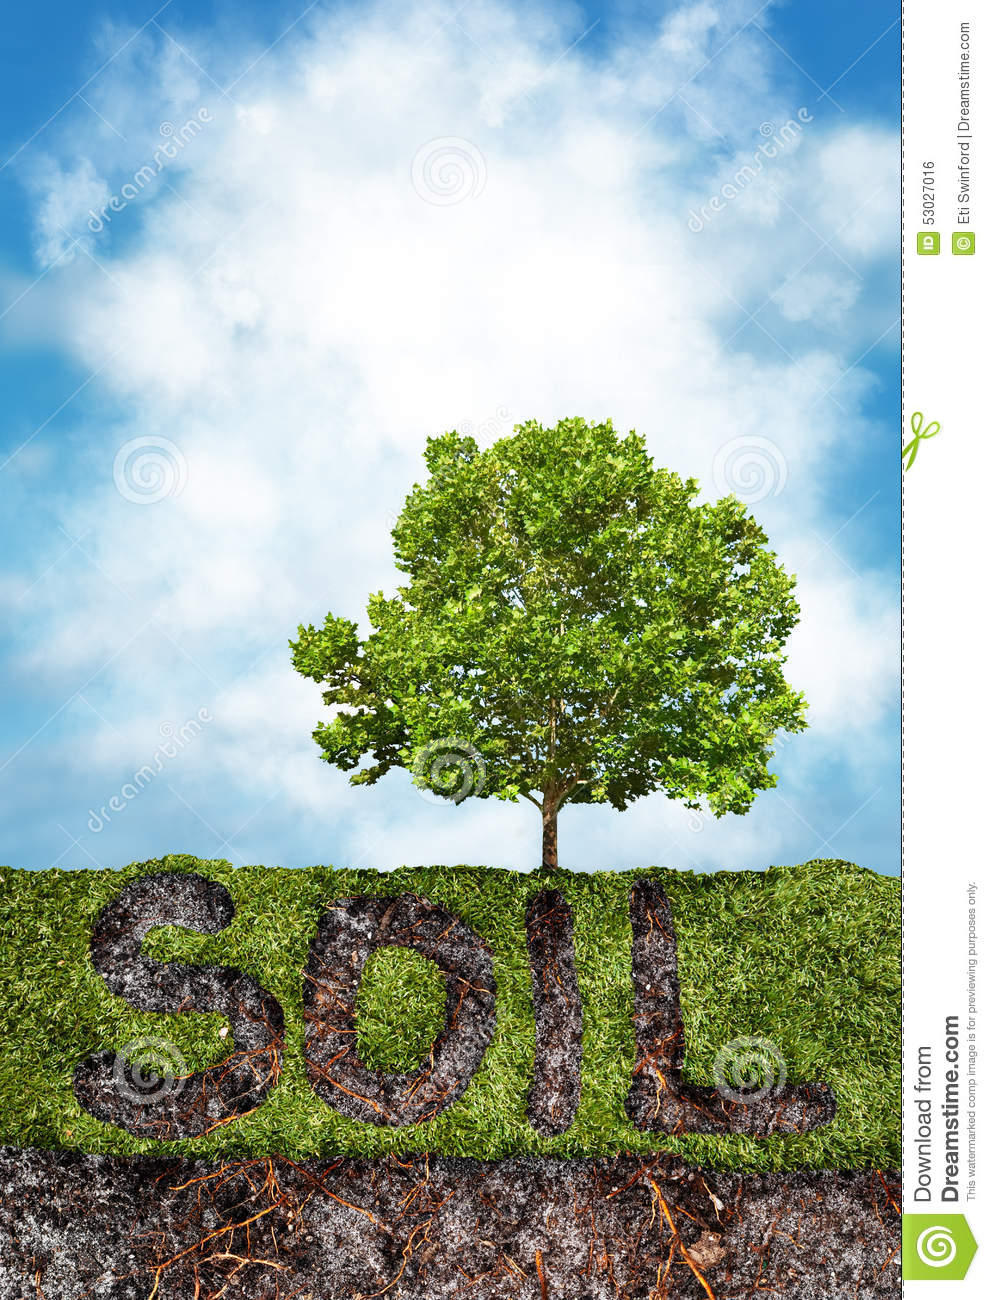 Soil and grass under tree